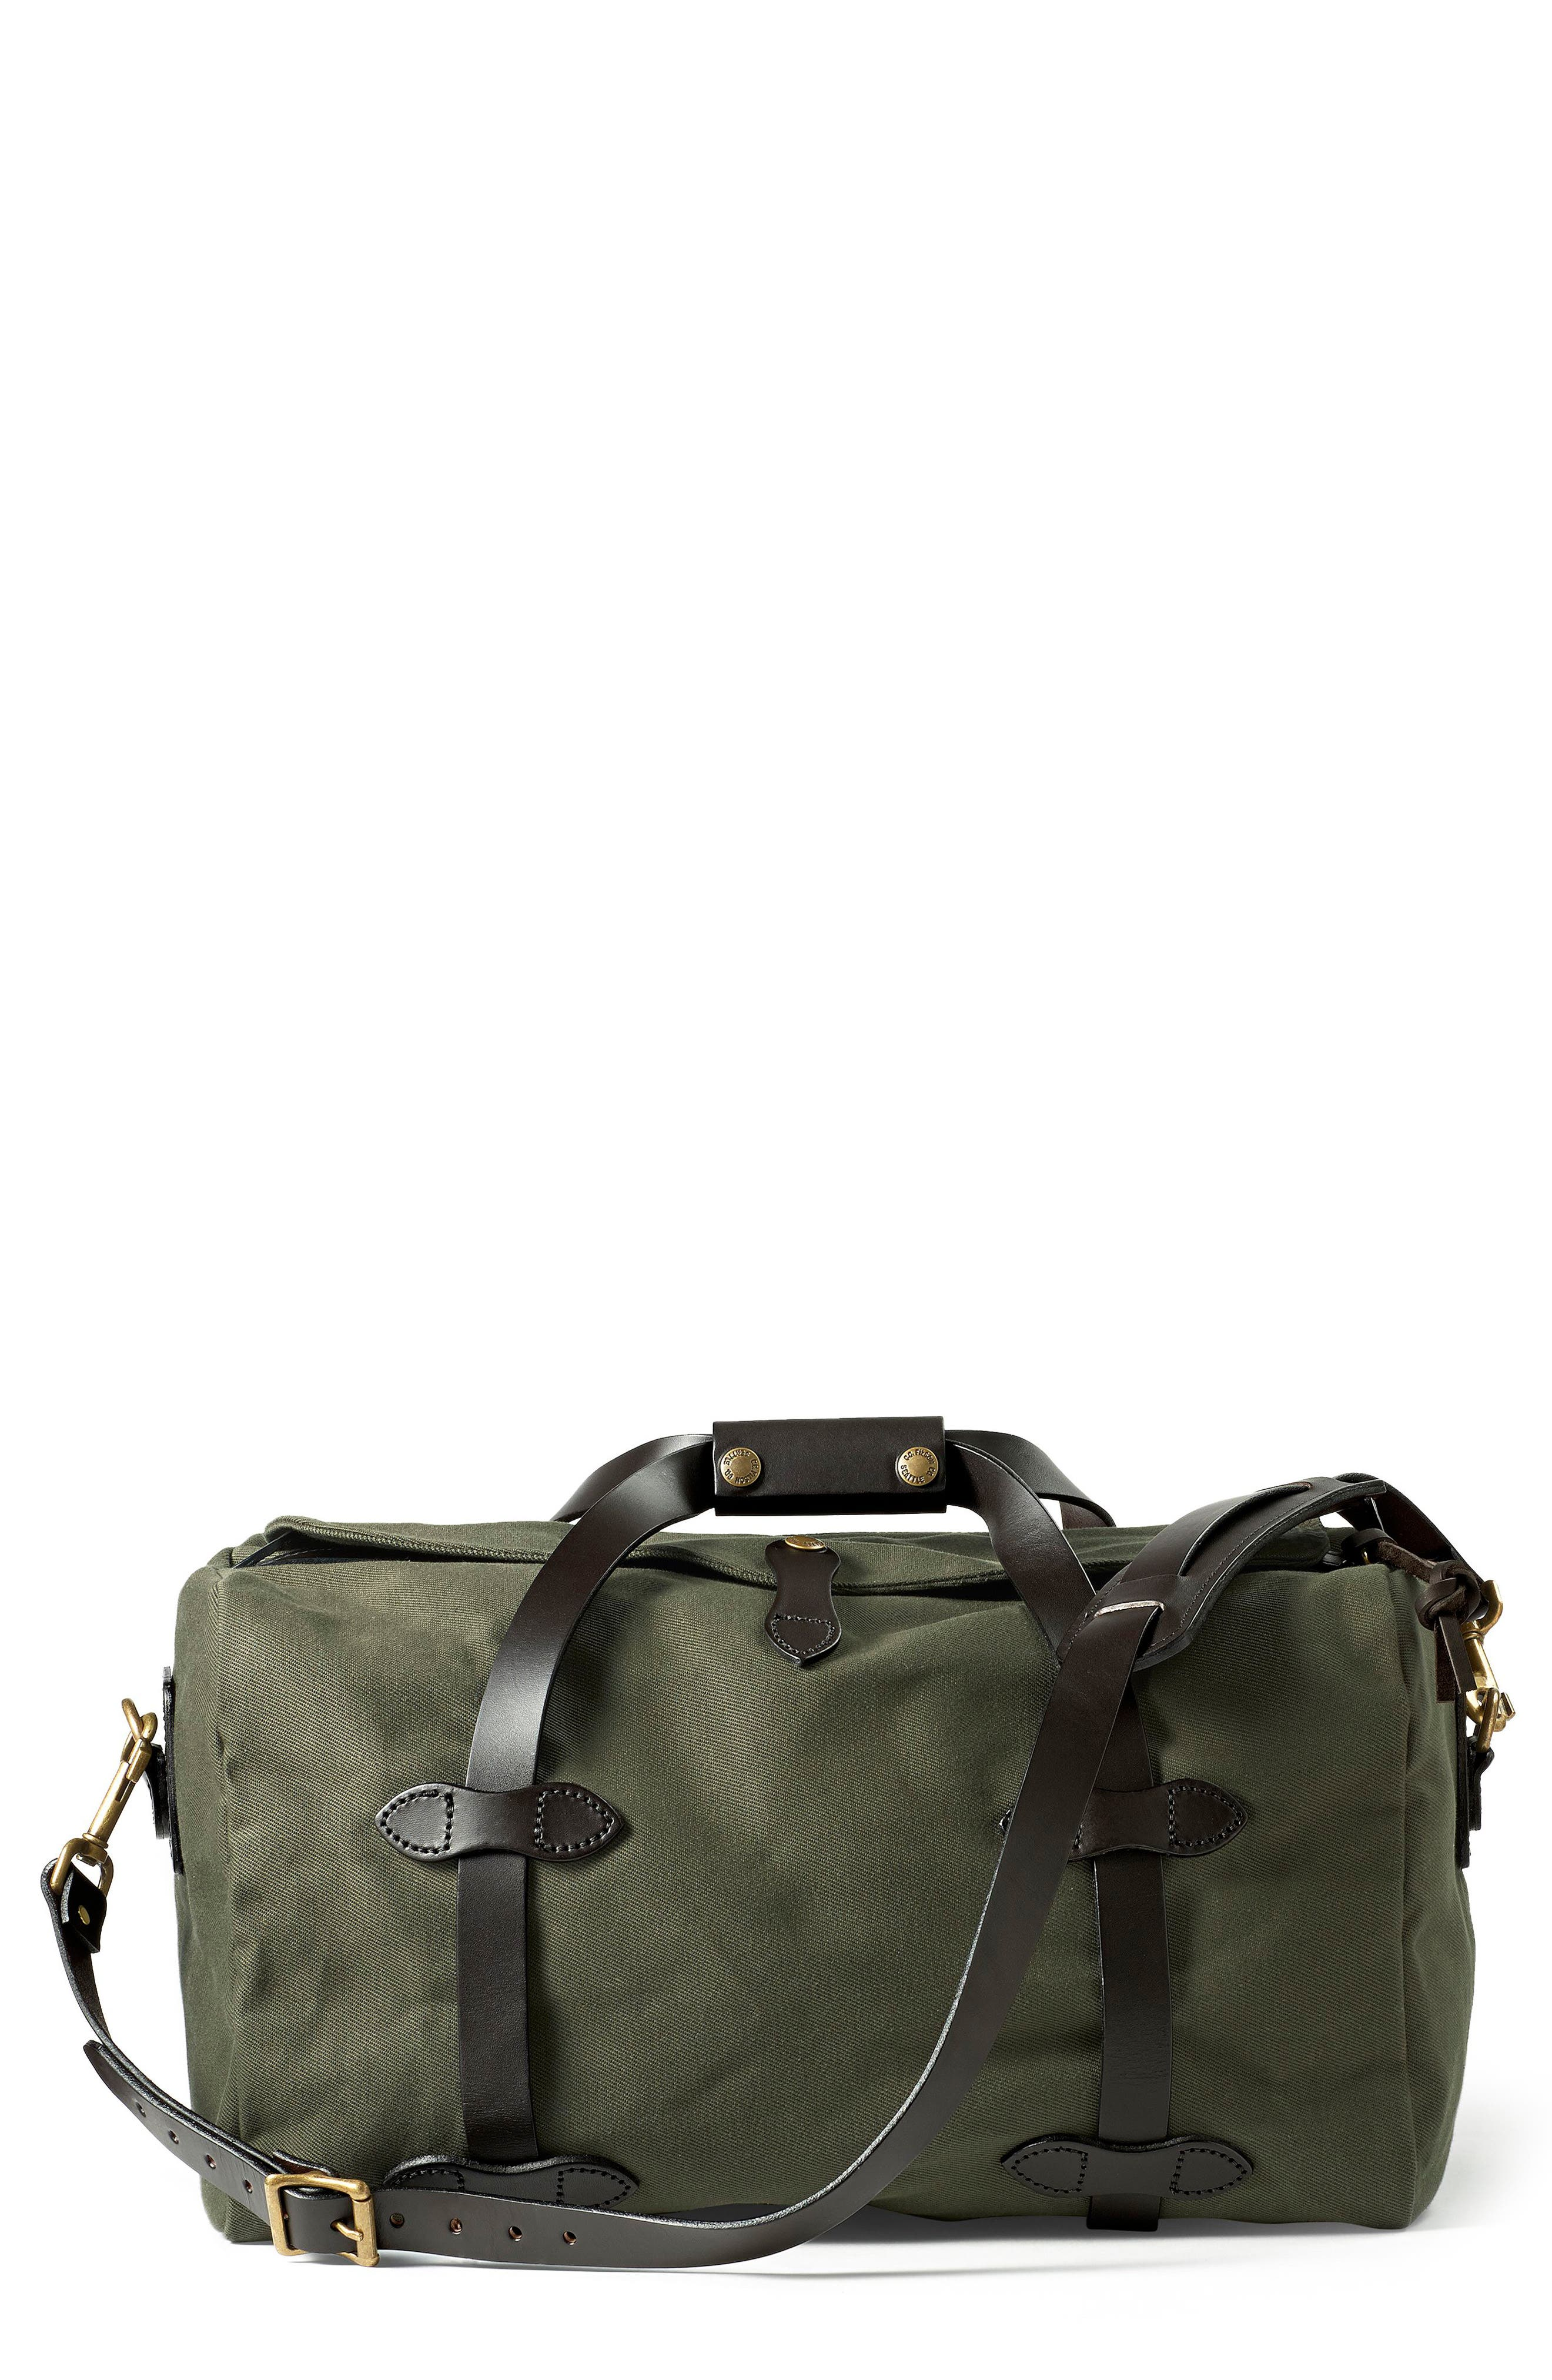 2e014c55df6e Filson Medium Duffel Bag - Green In Otter Green